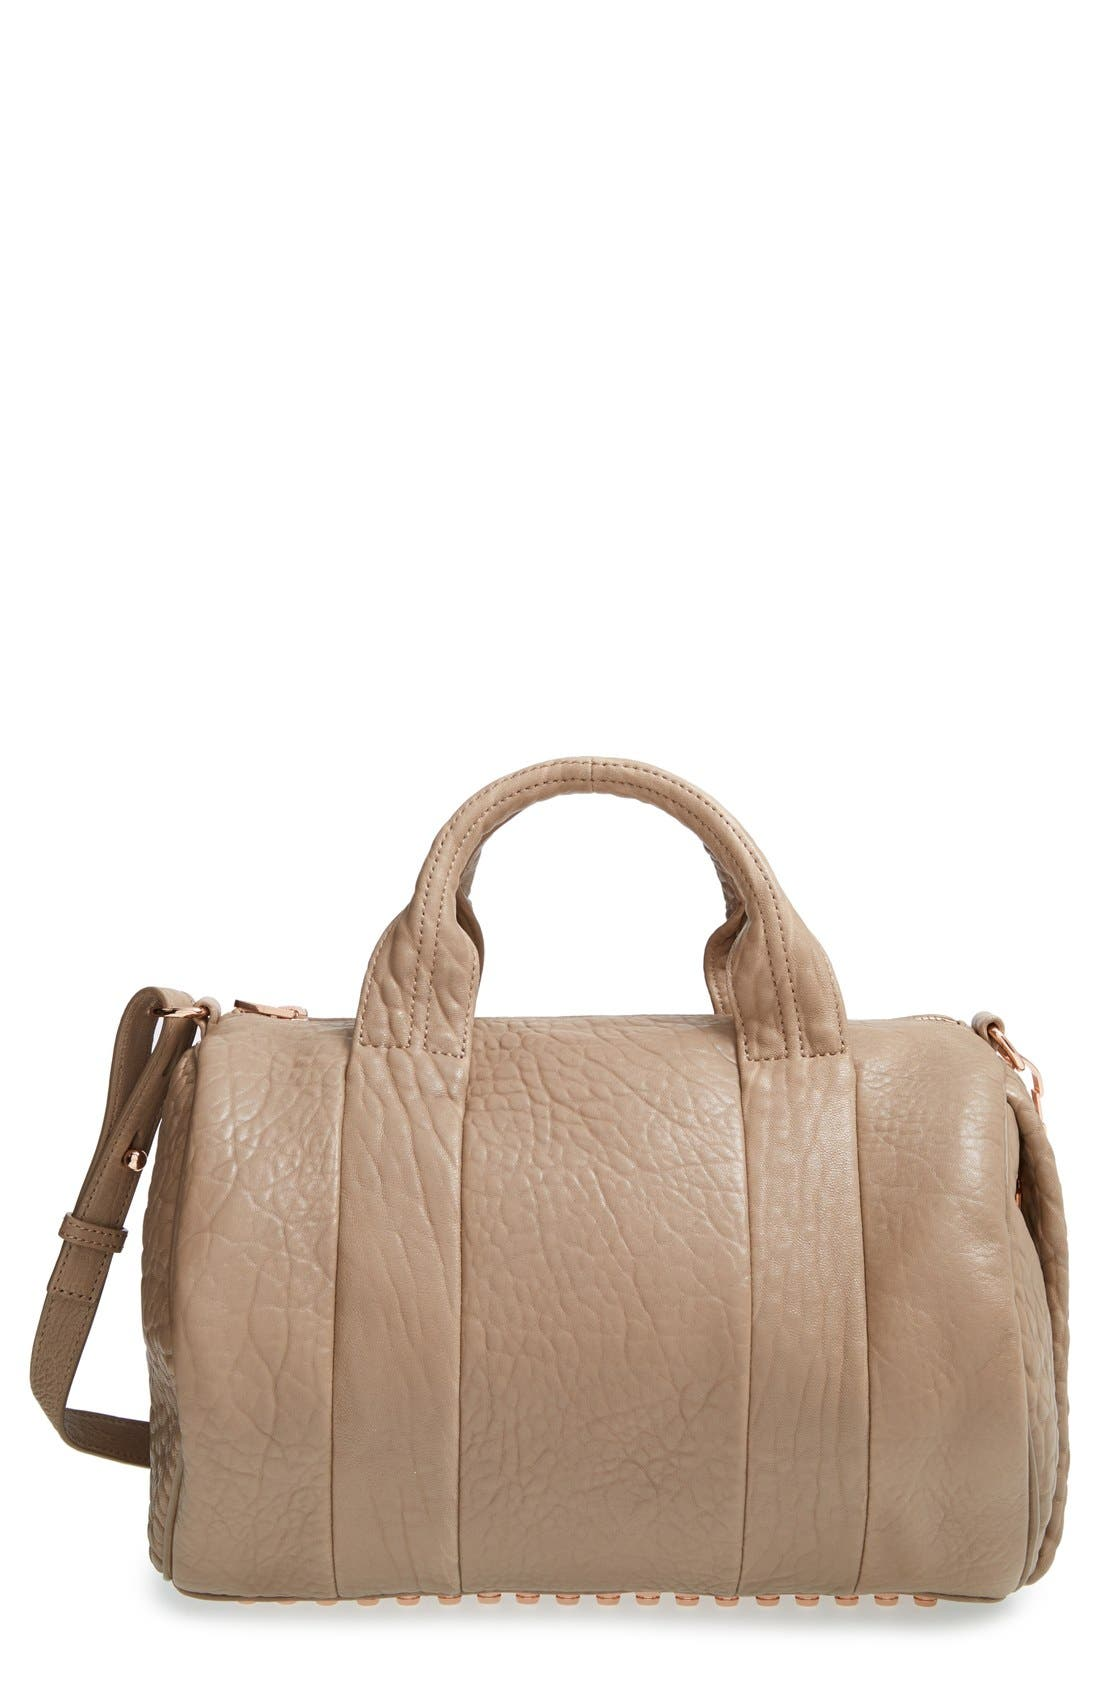 Alternate Image 1 Selected - Alexander Wang 'Rocco - Rose Gold' Leather Satchel